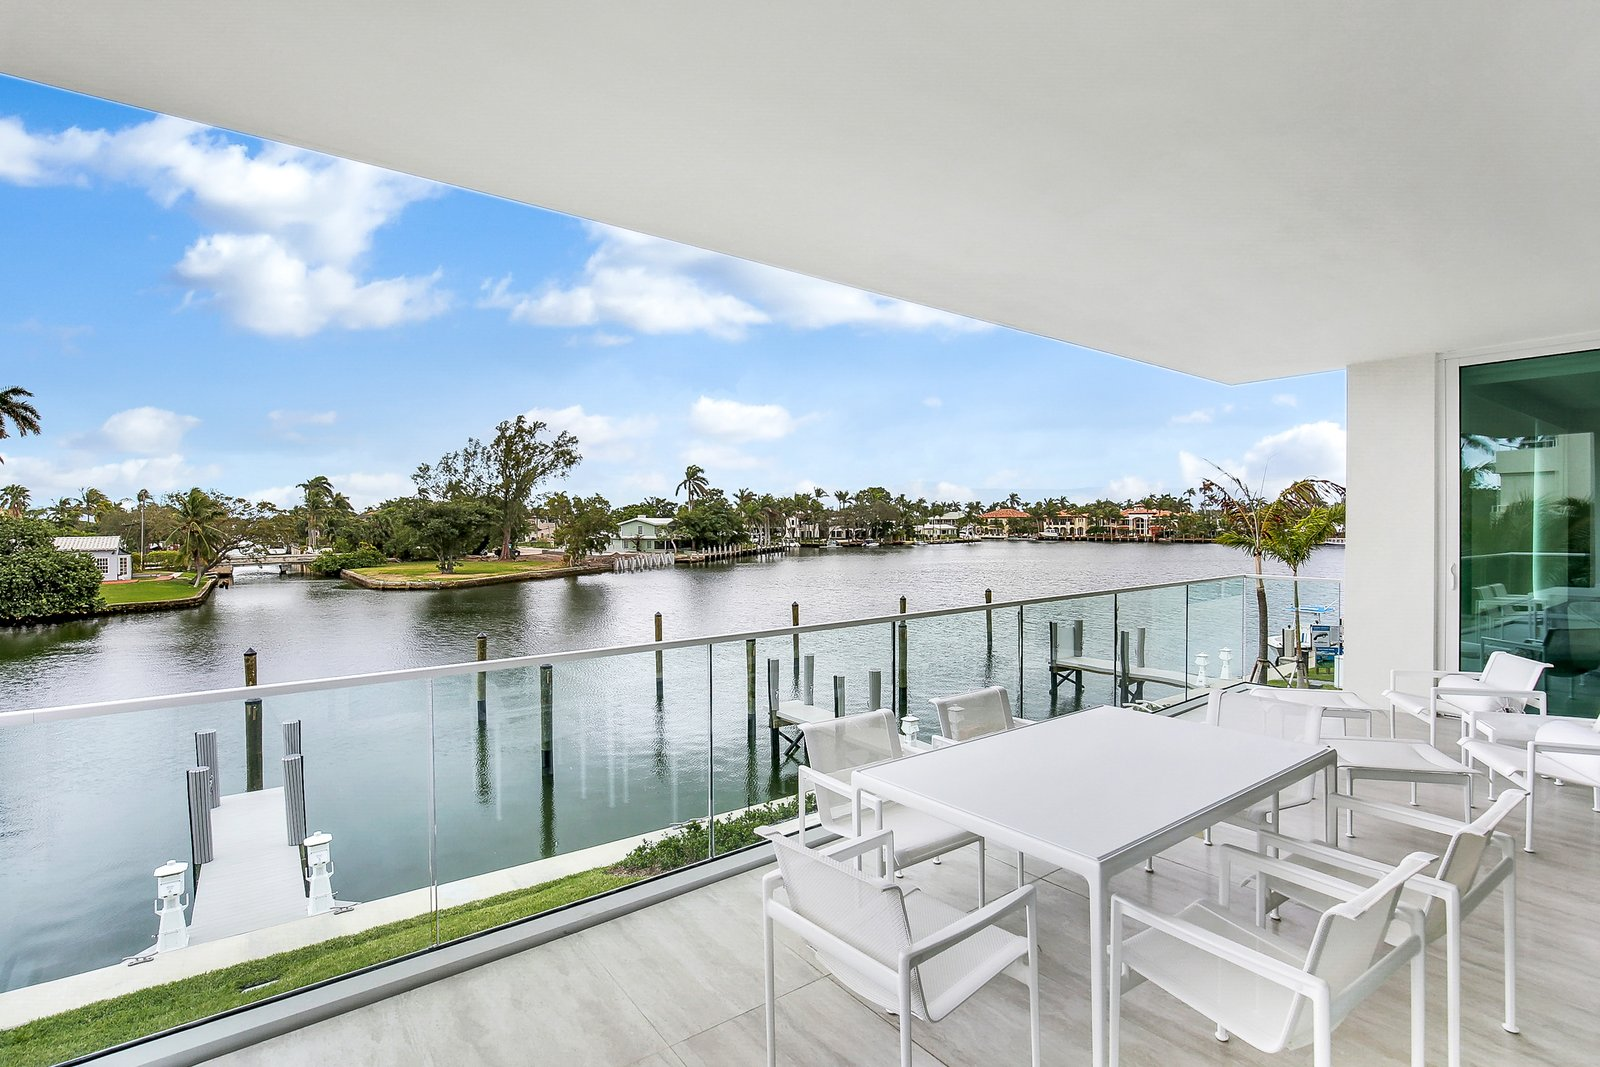 Outdoor  Striking, Modern Waterfront Residences Debut Along Fort Lauderdale's Picturesque Sunset Lake